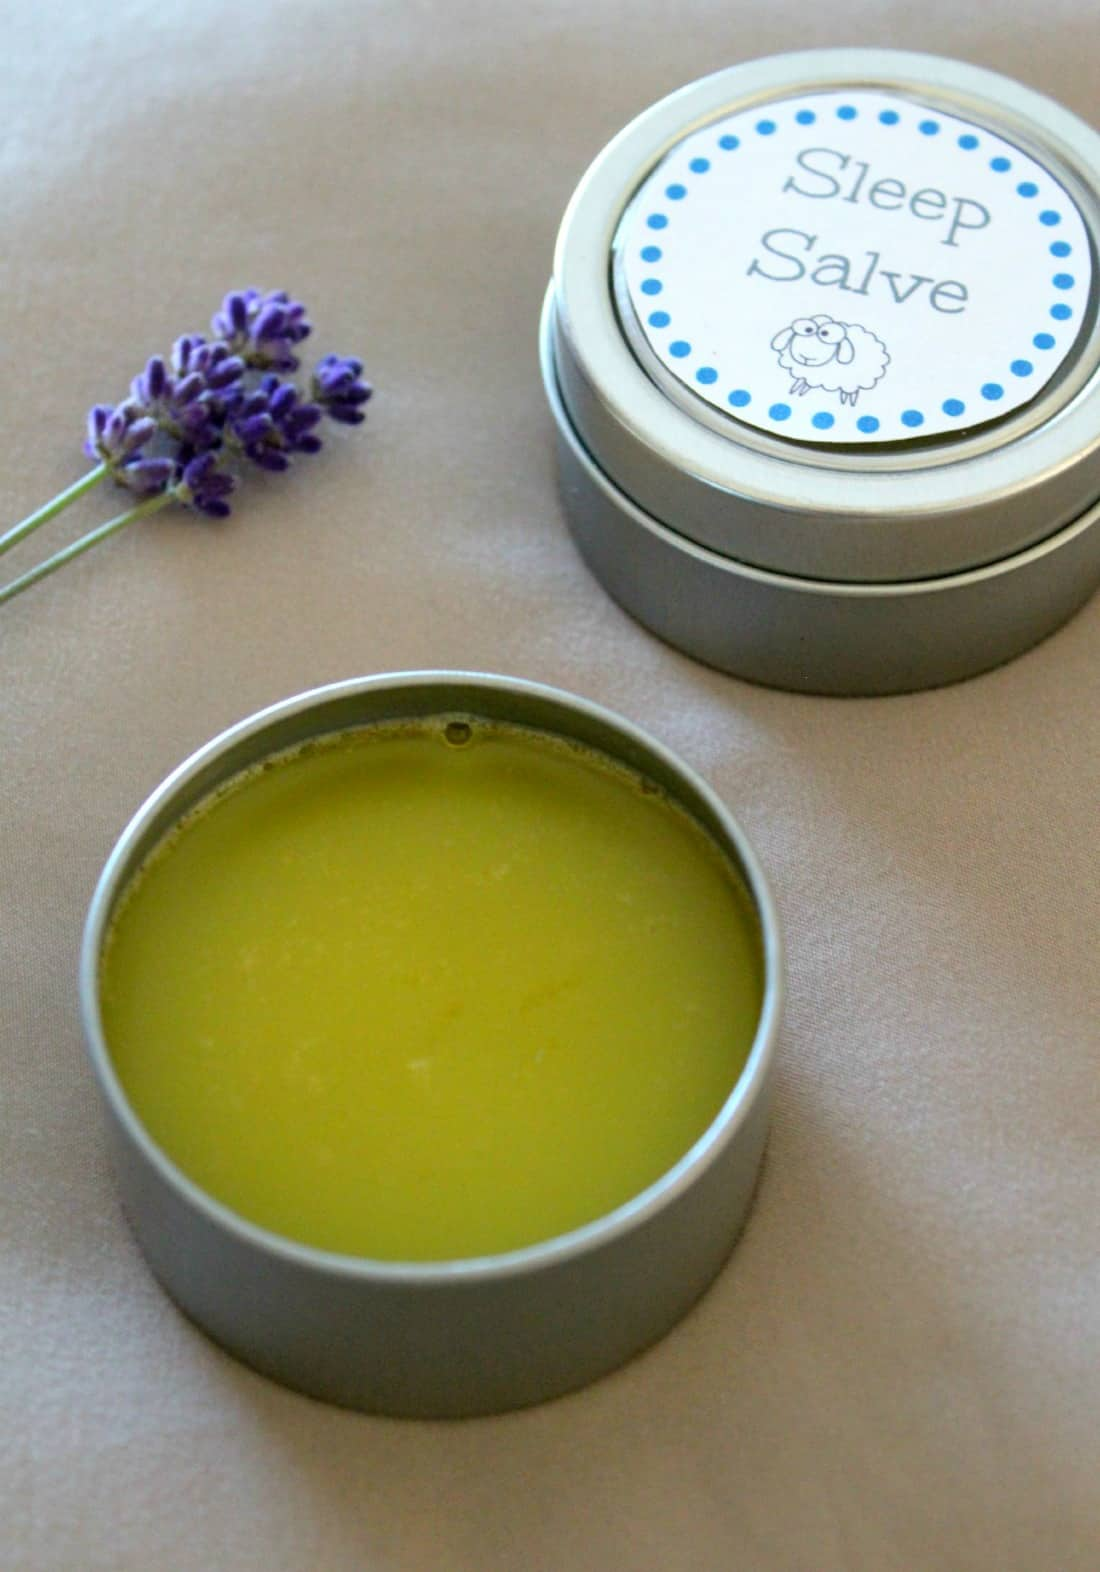 Homemade Sleep Salve Recipe